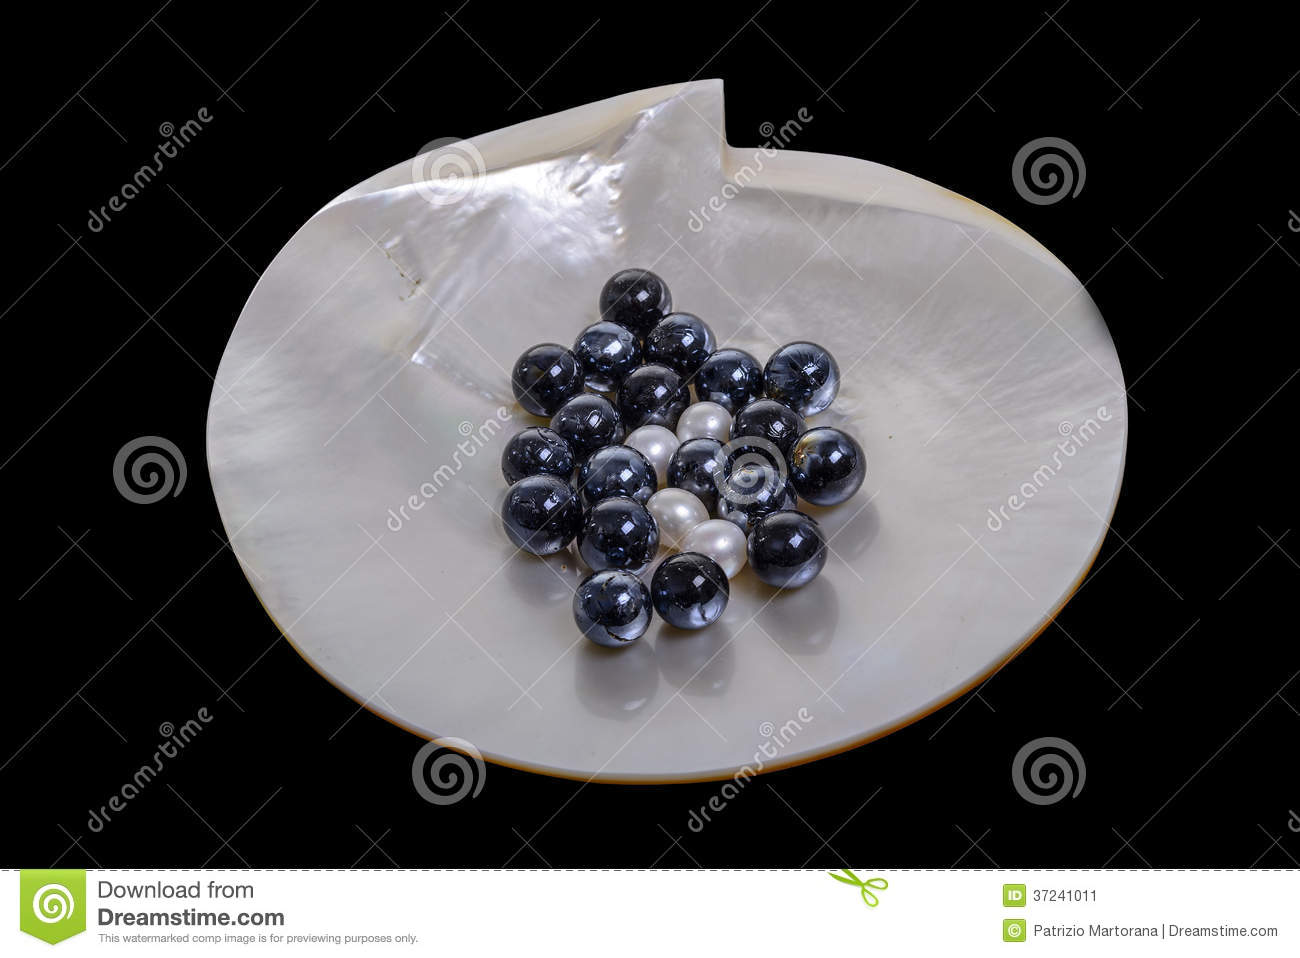 Black and white pearls stock image image 37241011 for Posate nere